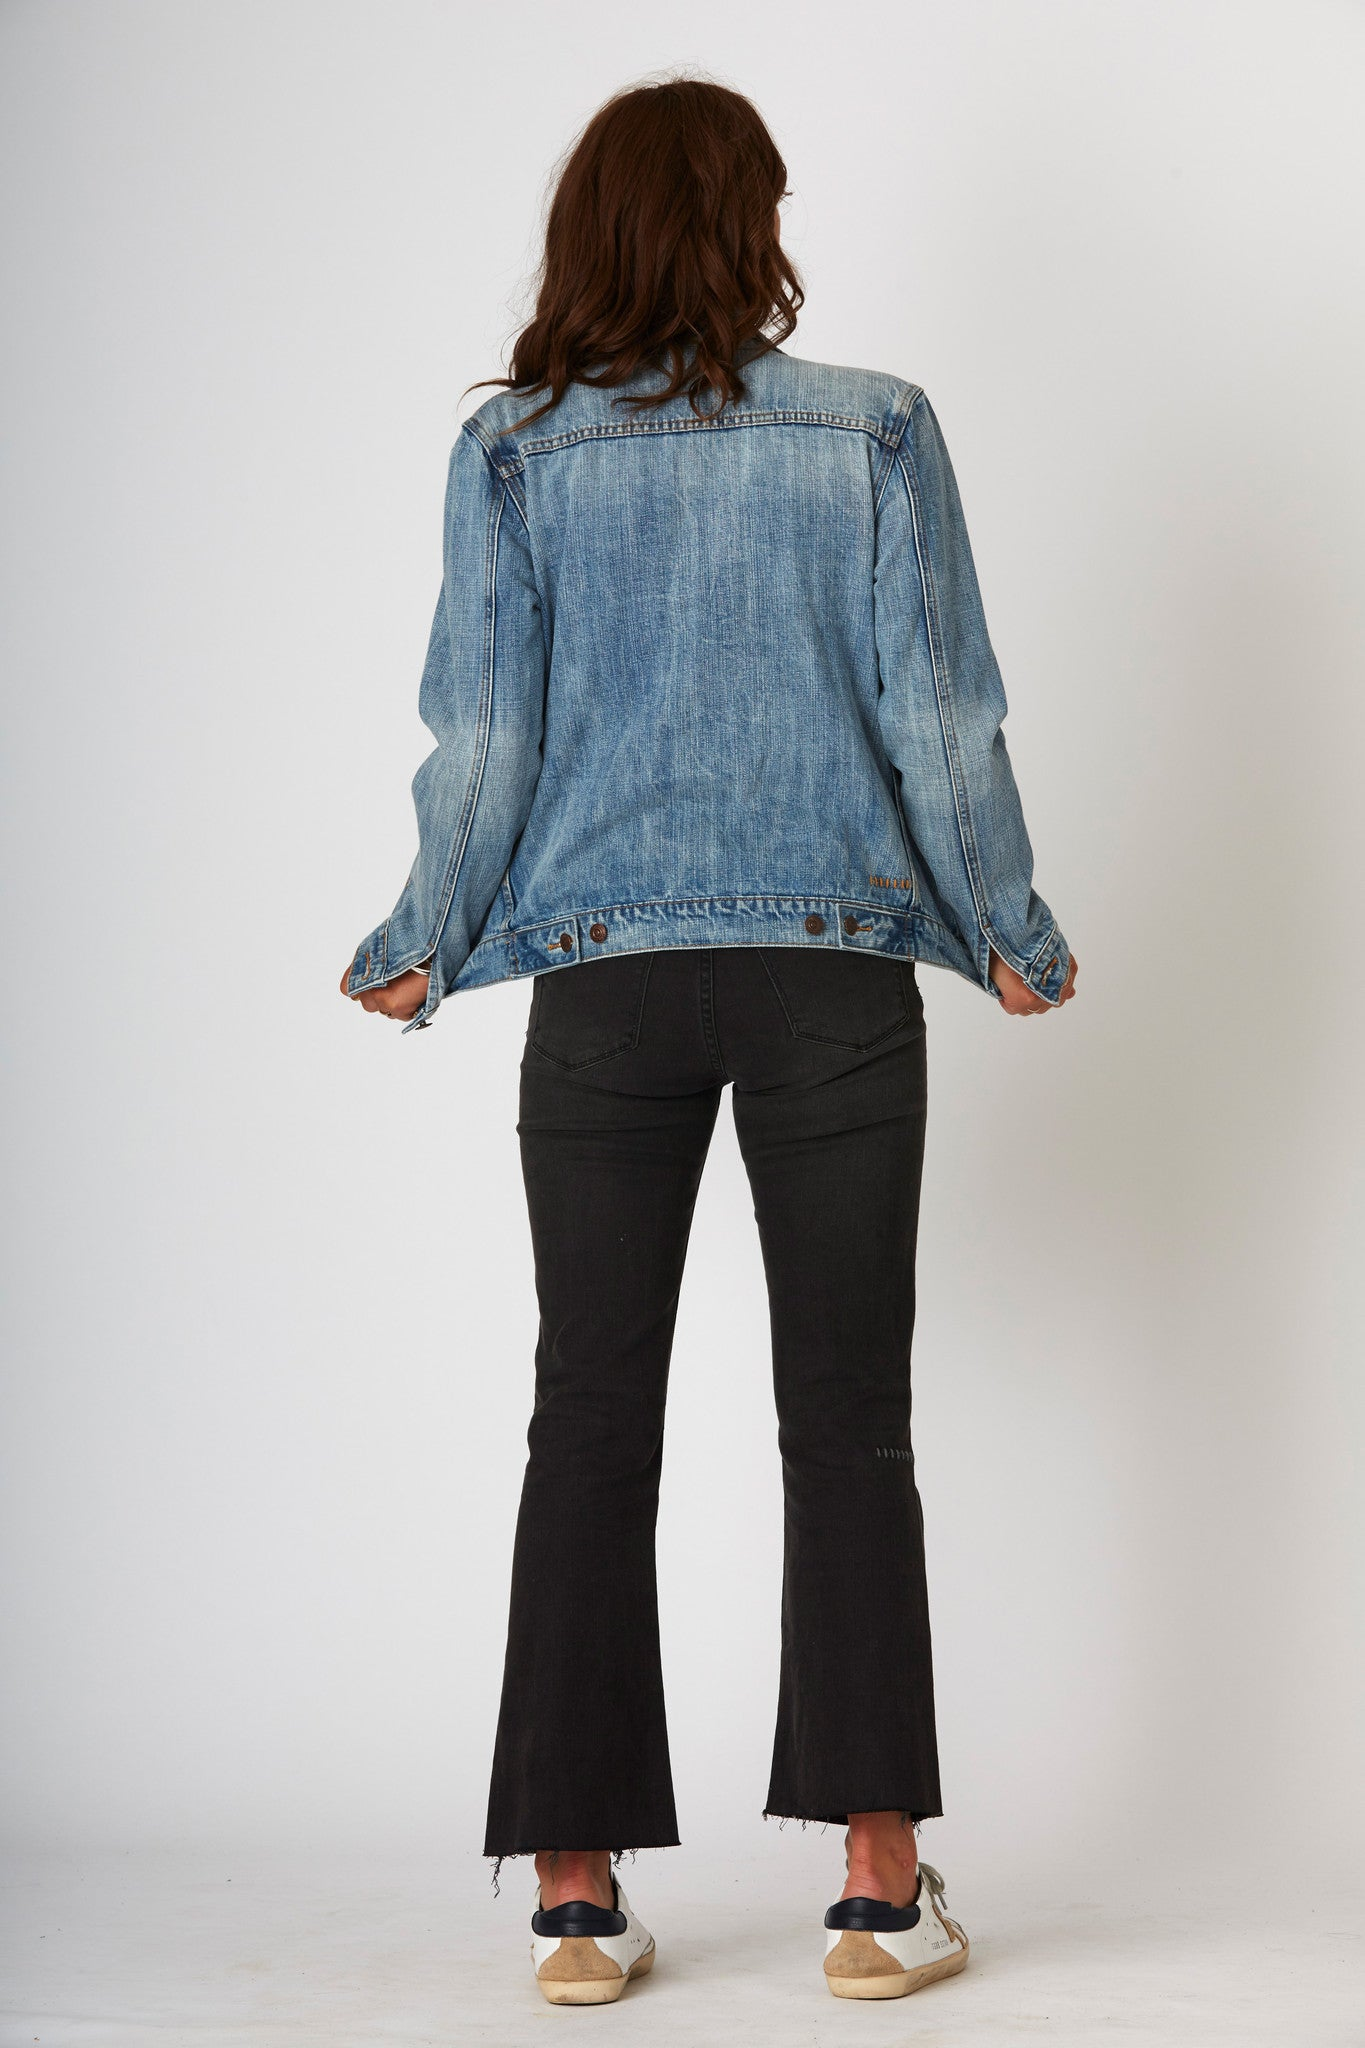 #1G12F Unisex Jacket Rust Blue - denimcolab